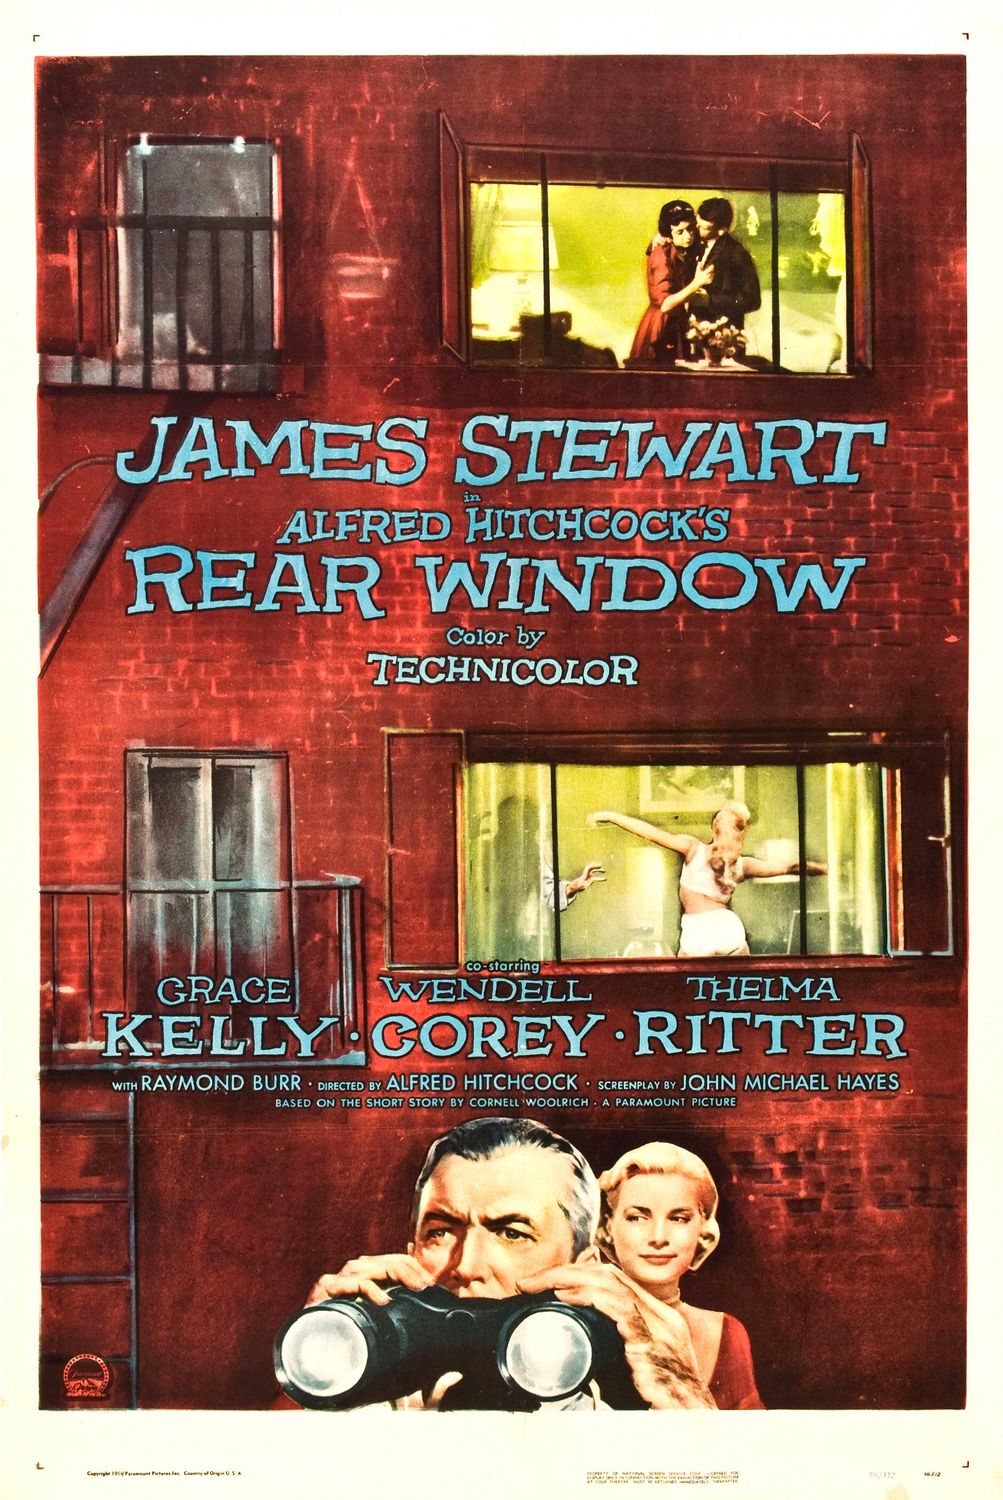 alfred hitchcock in rear window